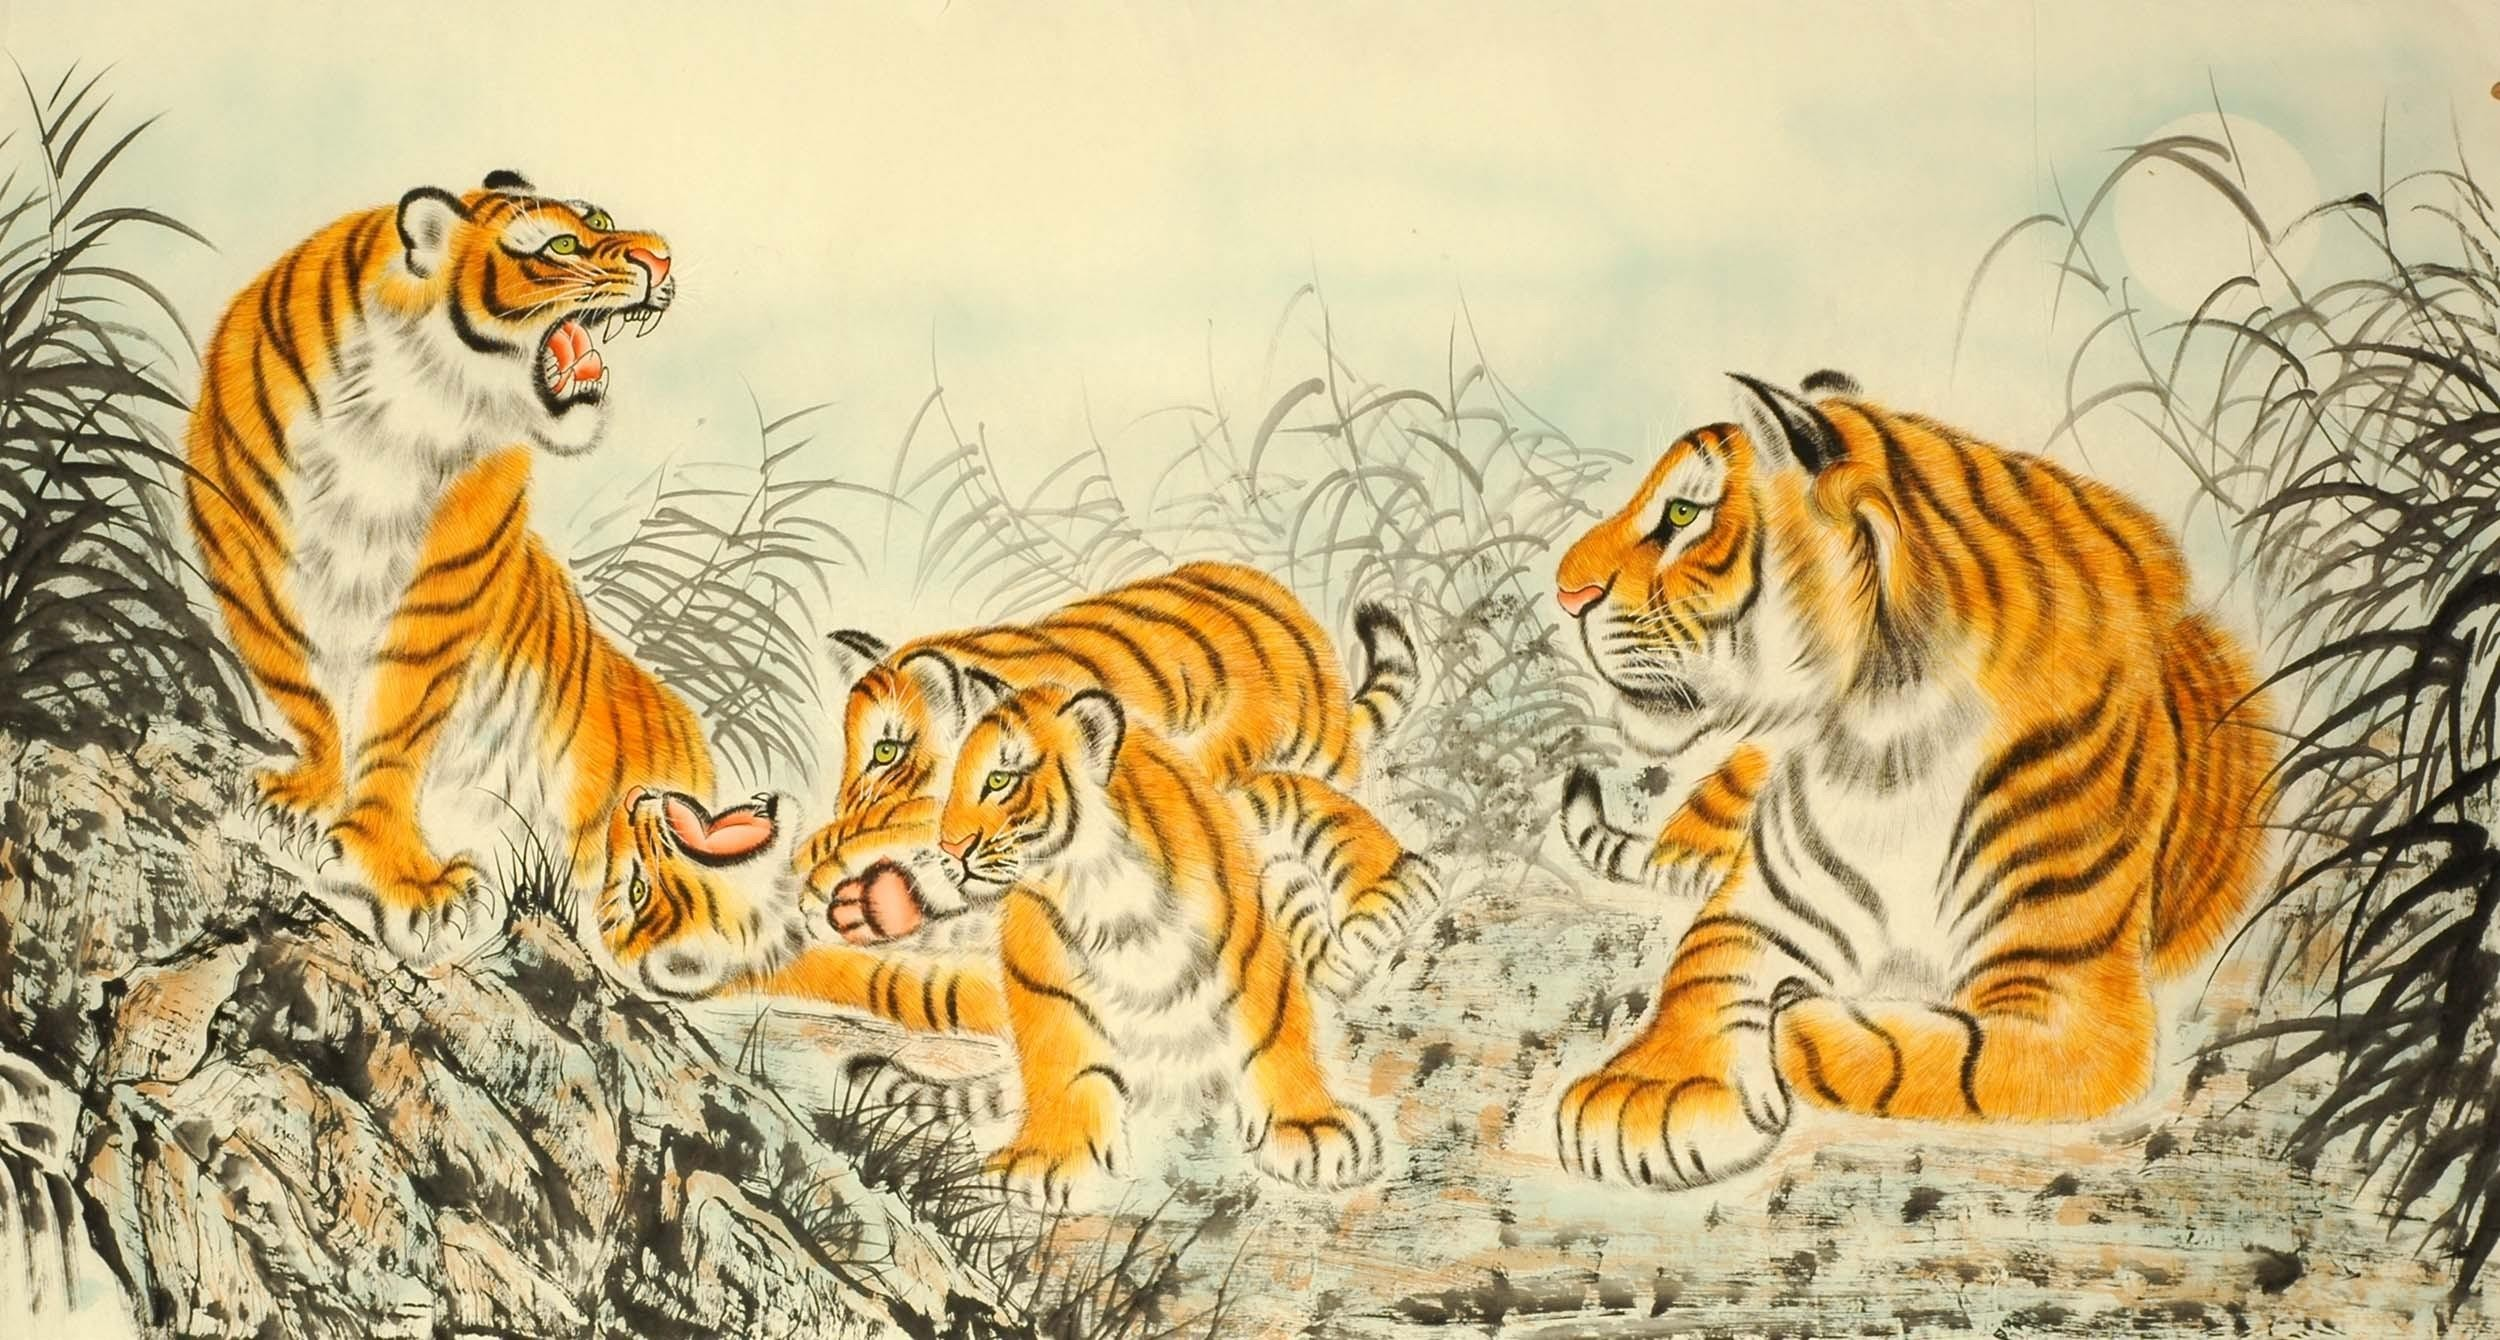 Chinese Tiger Painting - CNAG008381